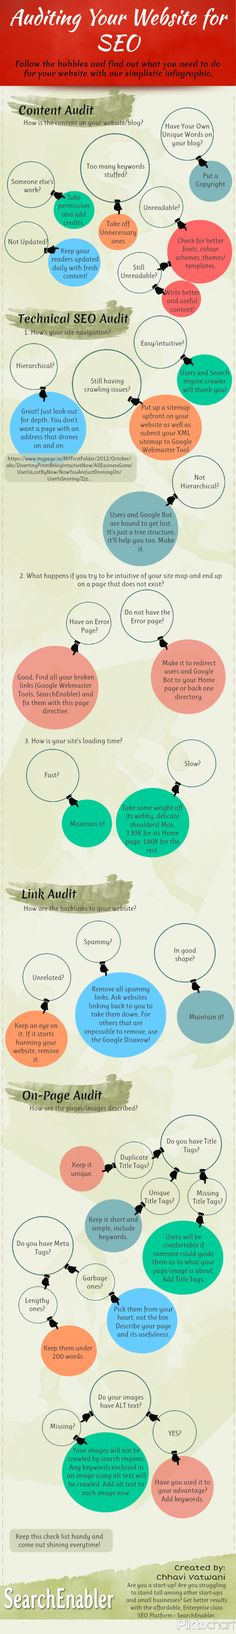 How To SEO Audit Your Website - A Walkthrough-Graphic by SearchEnabler.com